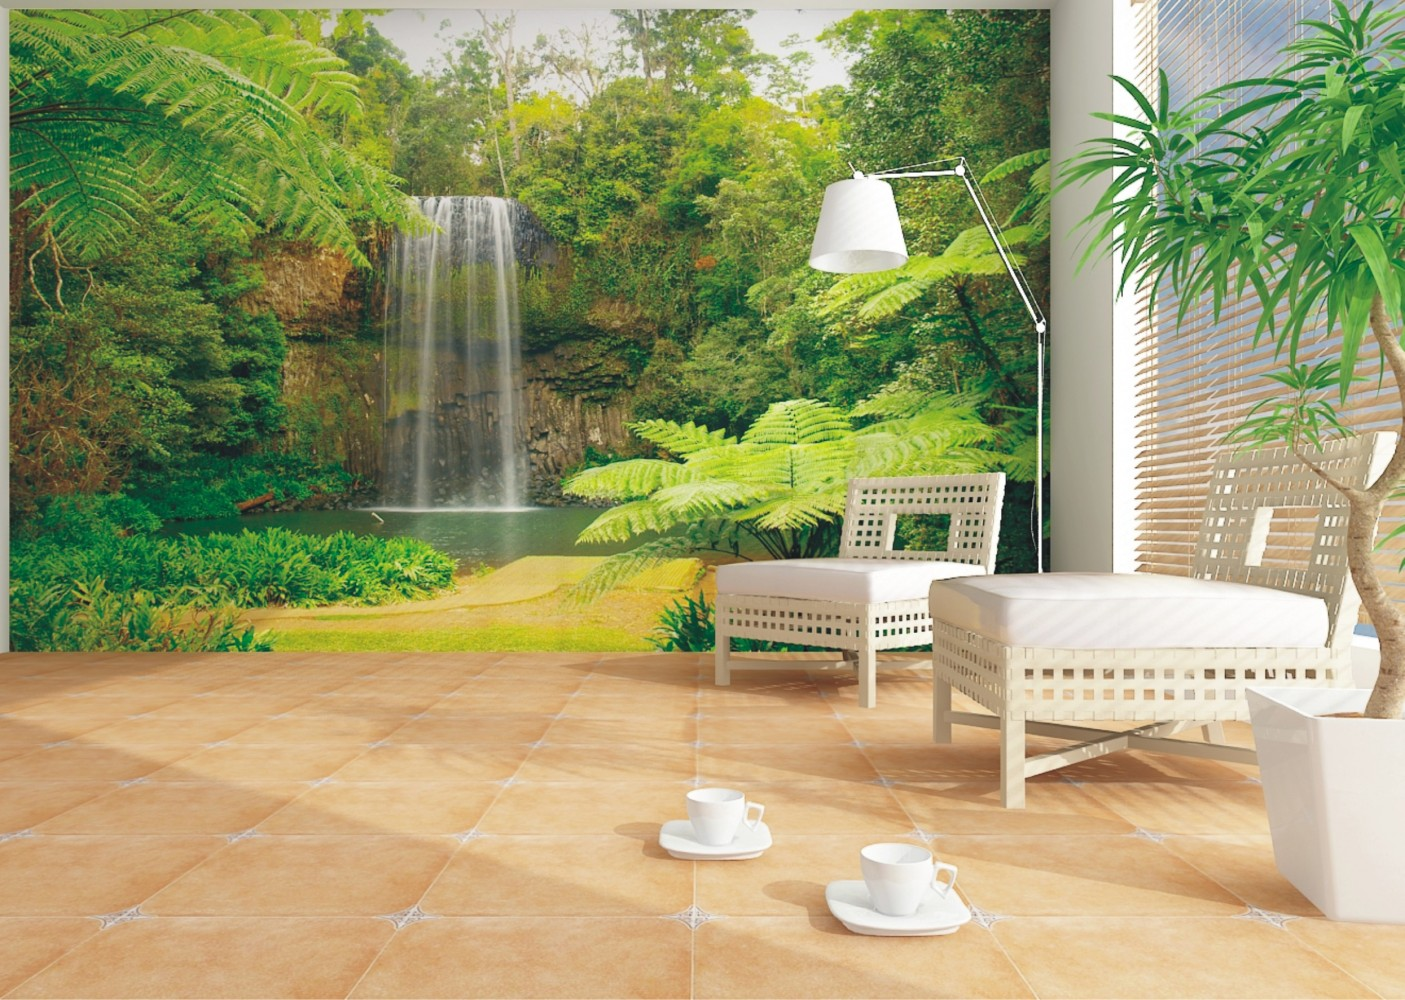 Wall mural wallpaper nature jungle downfall plant photo for 3d nature wallpaper for wall